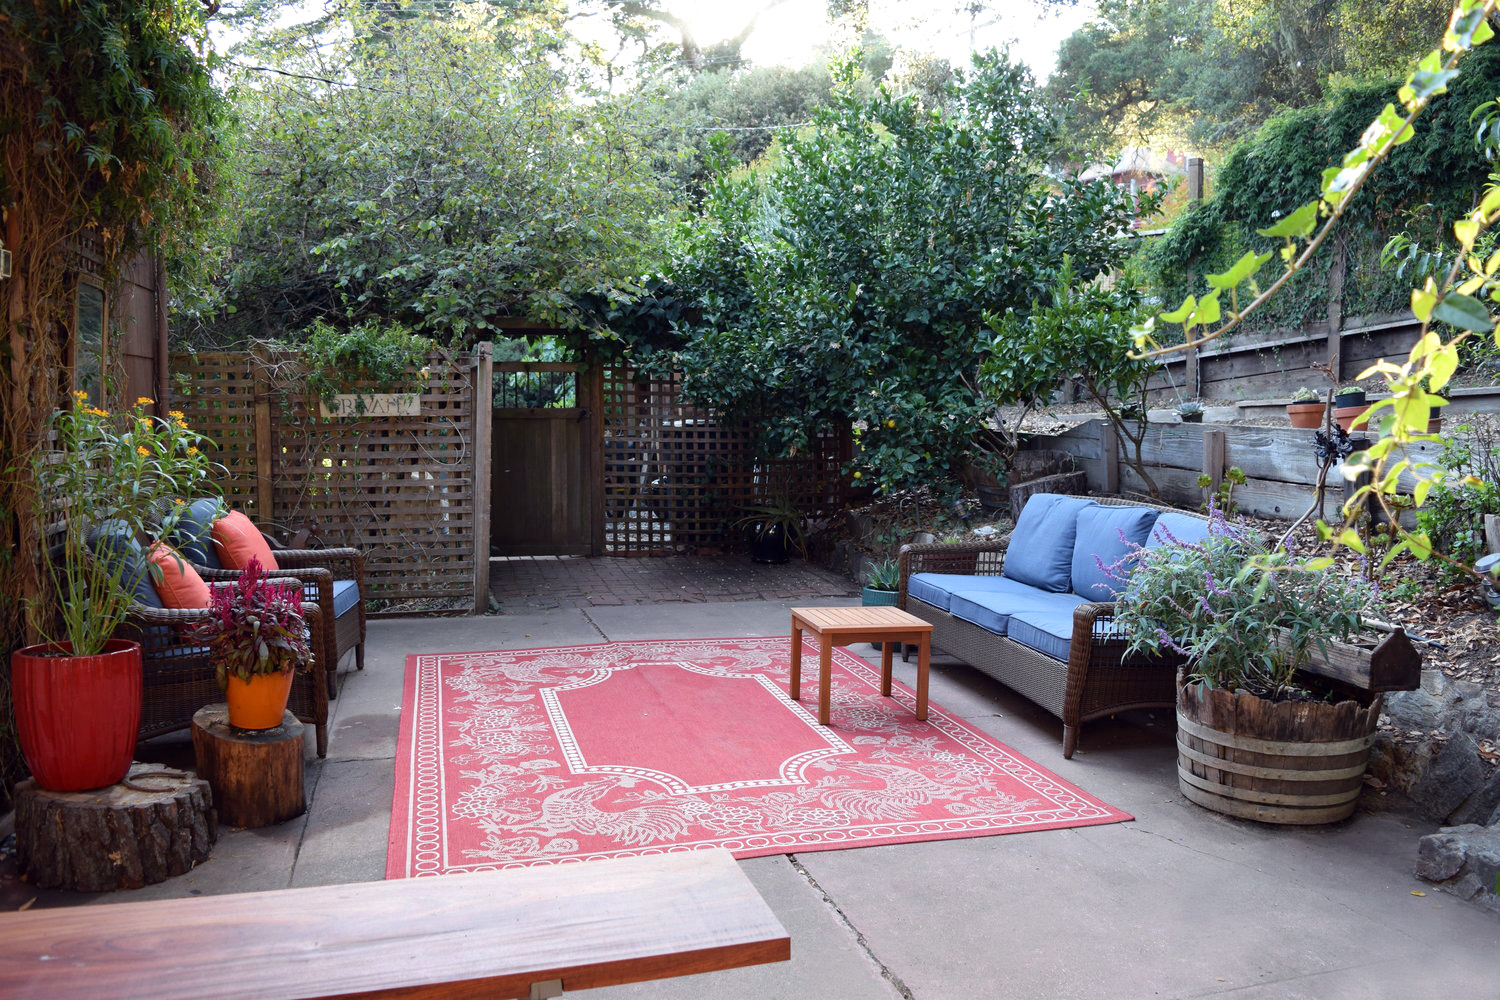 Outdoor patio with seating in private enclosed garden